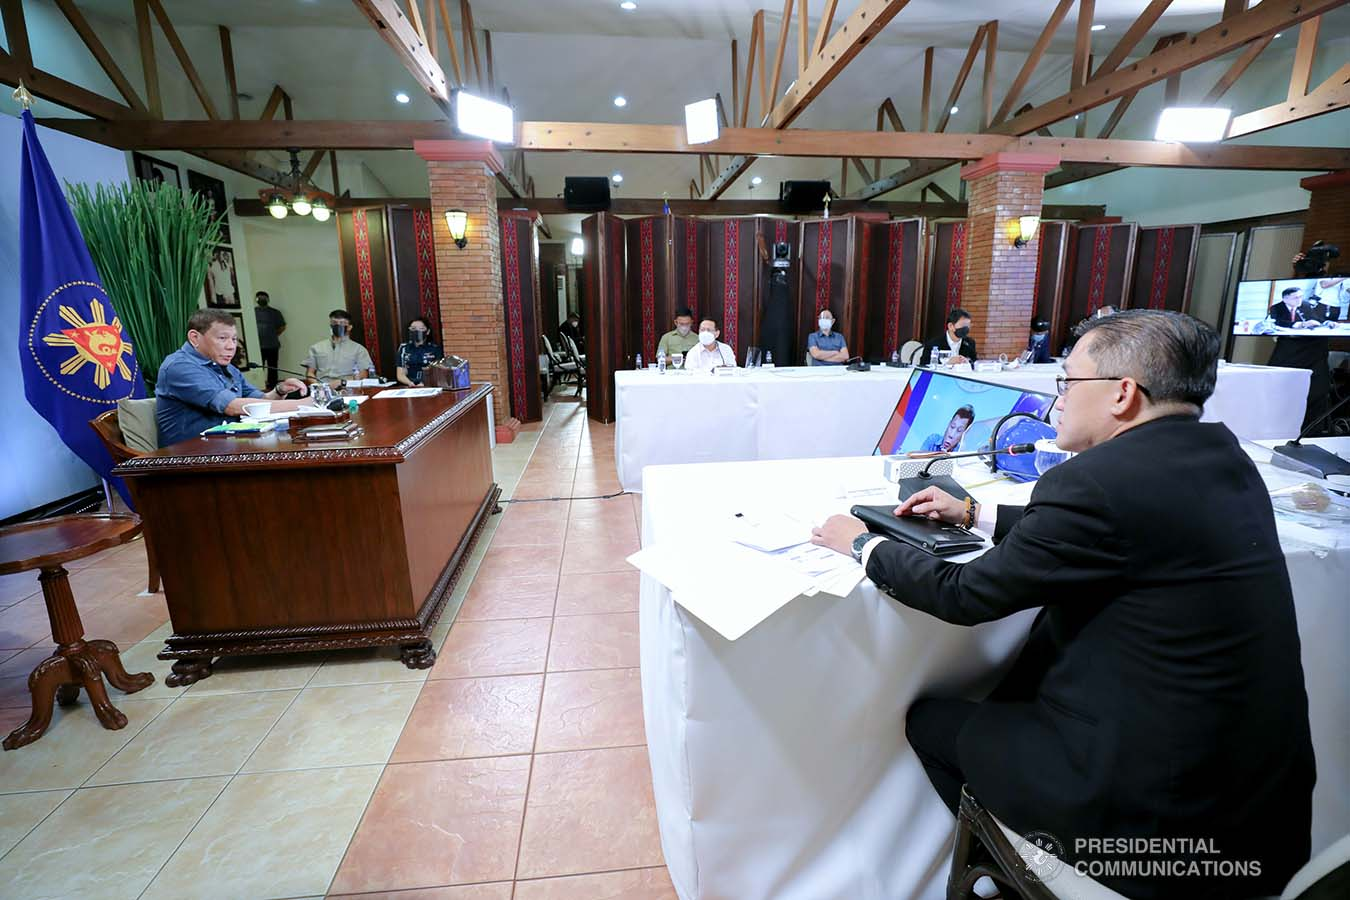 President Rodrigo Roa Duterte presides over a meeting with the Inter-Agency Task Force on the Emerging Infectious Diseases (IATF-EID) core members prior to his talk to the people at the Malacañang Golf (Malago) Clubhouse in Malacañang Park, Manila on May 26, 2021. ROBINSON NIÑAL/ PRESIDENTIAL PHOTO